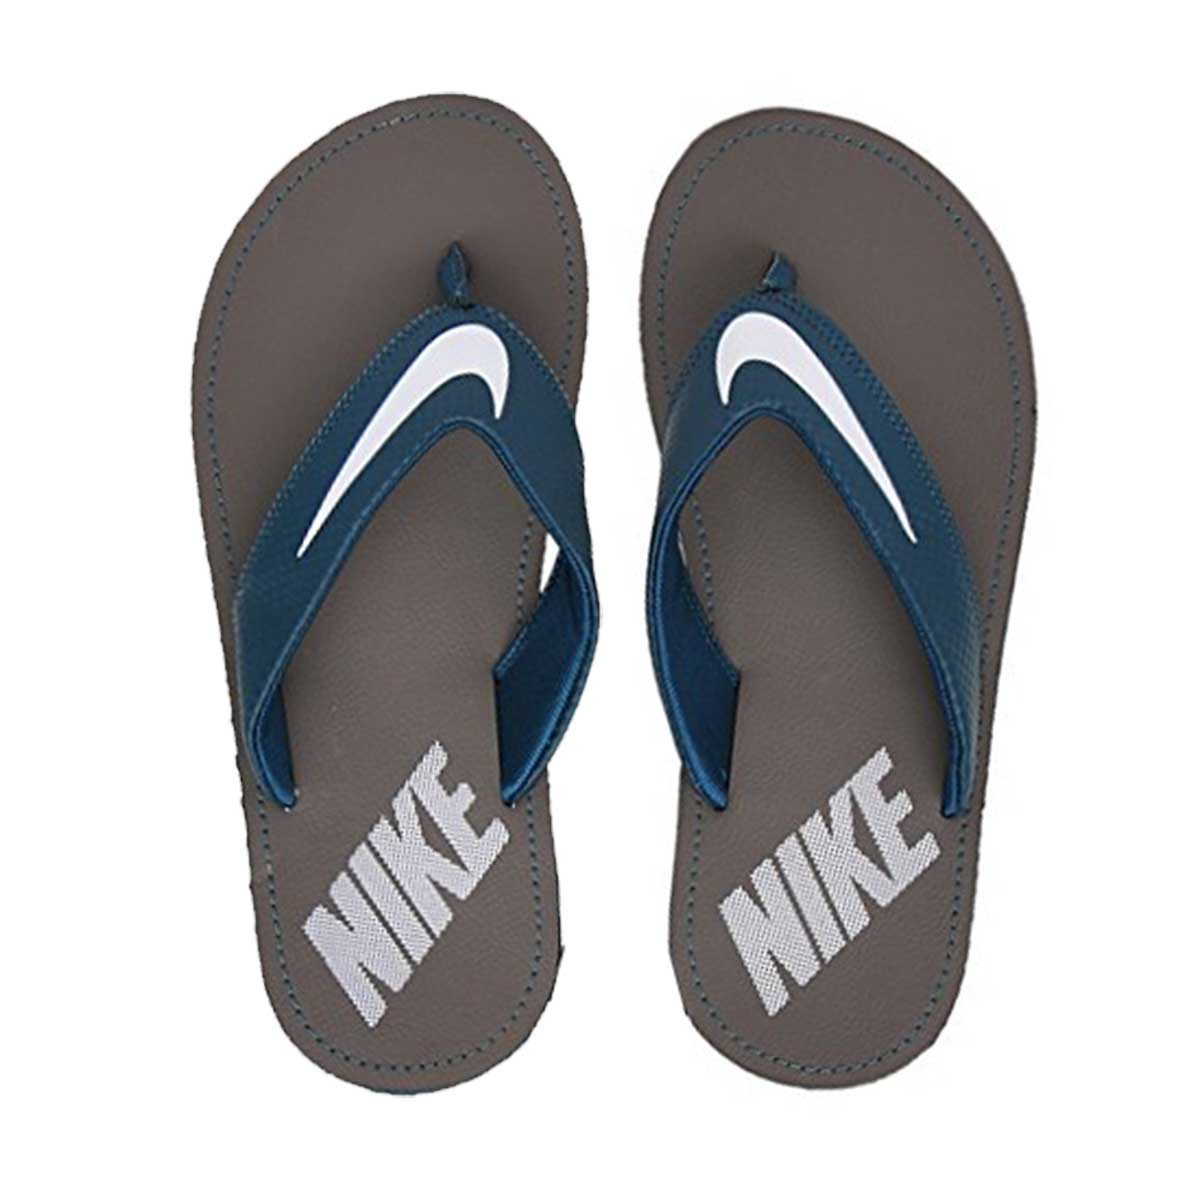 4ad549d21b4 Buy Nike Chroma Thong 4 Men Slippers Online India